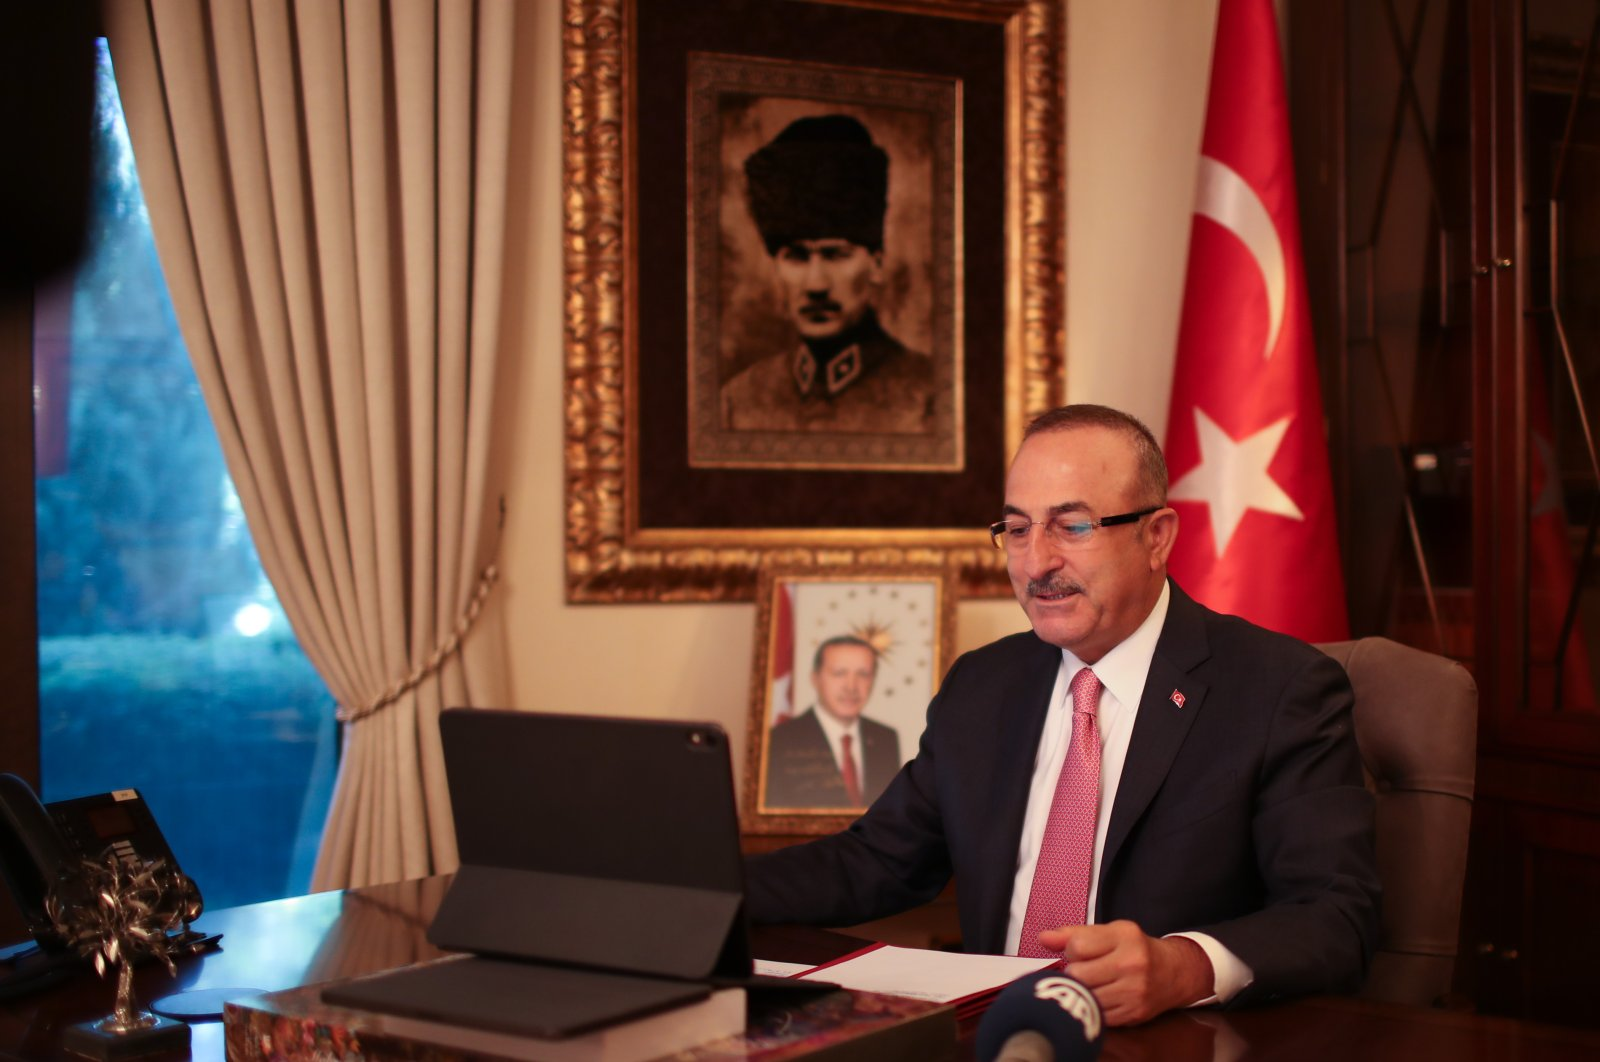 Foreign Minister Mevlüt Çavuşoğlu holds a videoconference on the occasion of Children's Day and the centenary of the Turkish Parliament, Ankara, Turkey, April 23, 2020. (AA Photo)